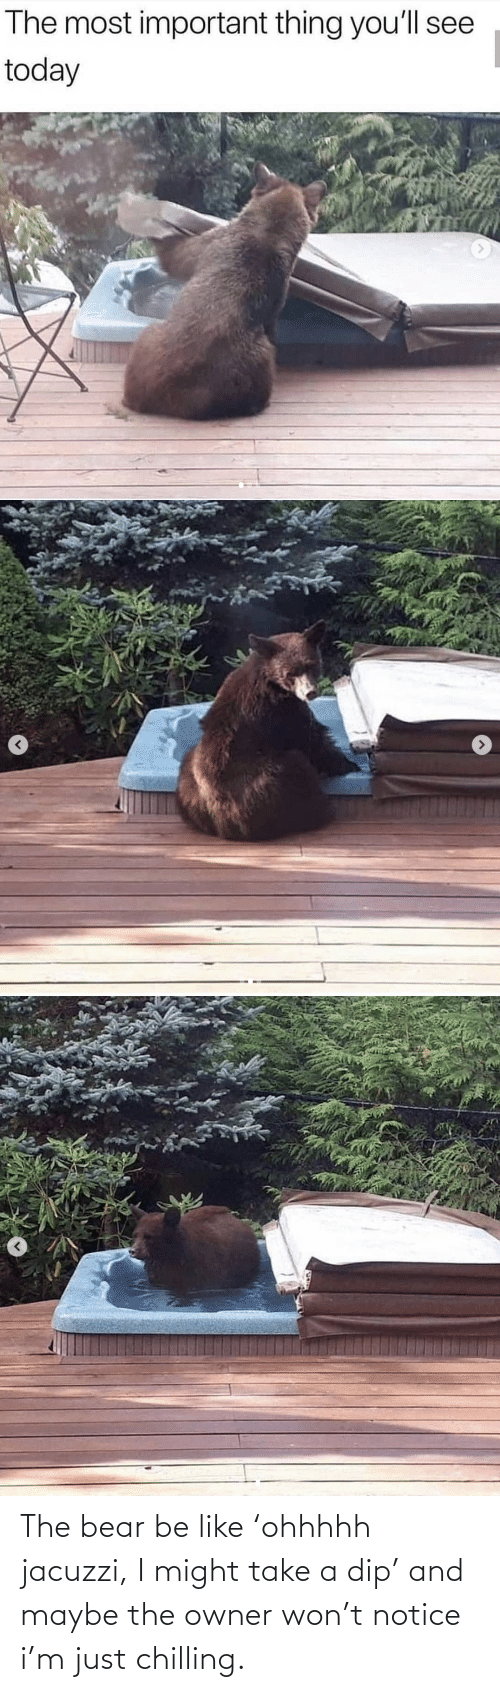 owner: The bear be like 'ohhhhh jacuzzi, I might take a dip' and maybe the owner won't notice i'm just chilling.